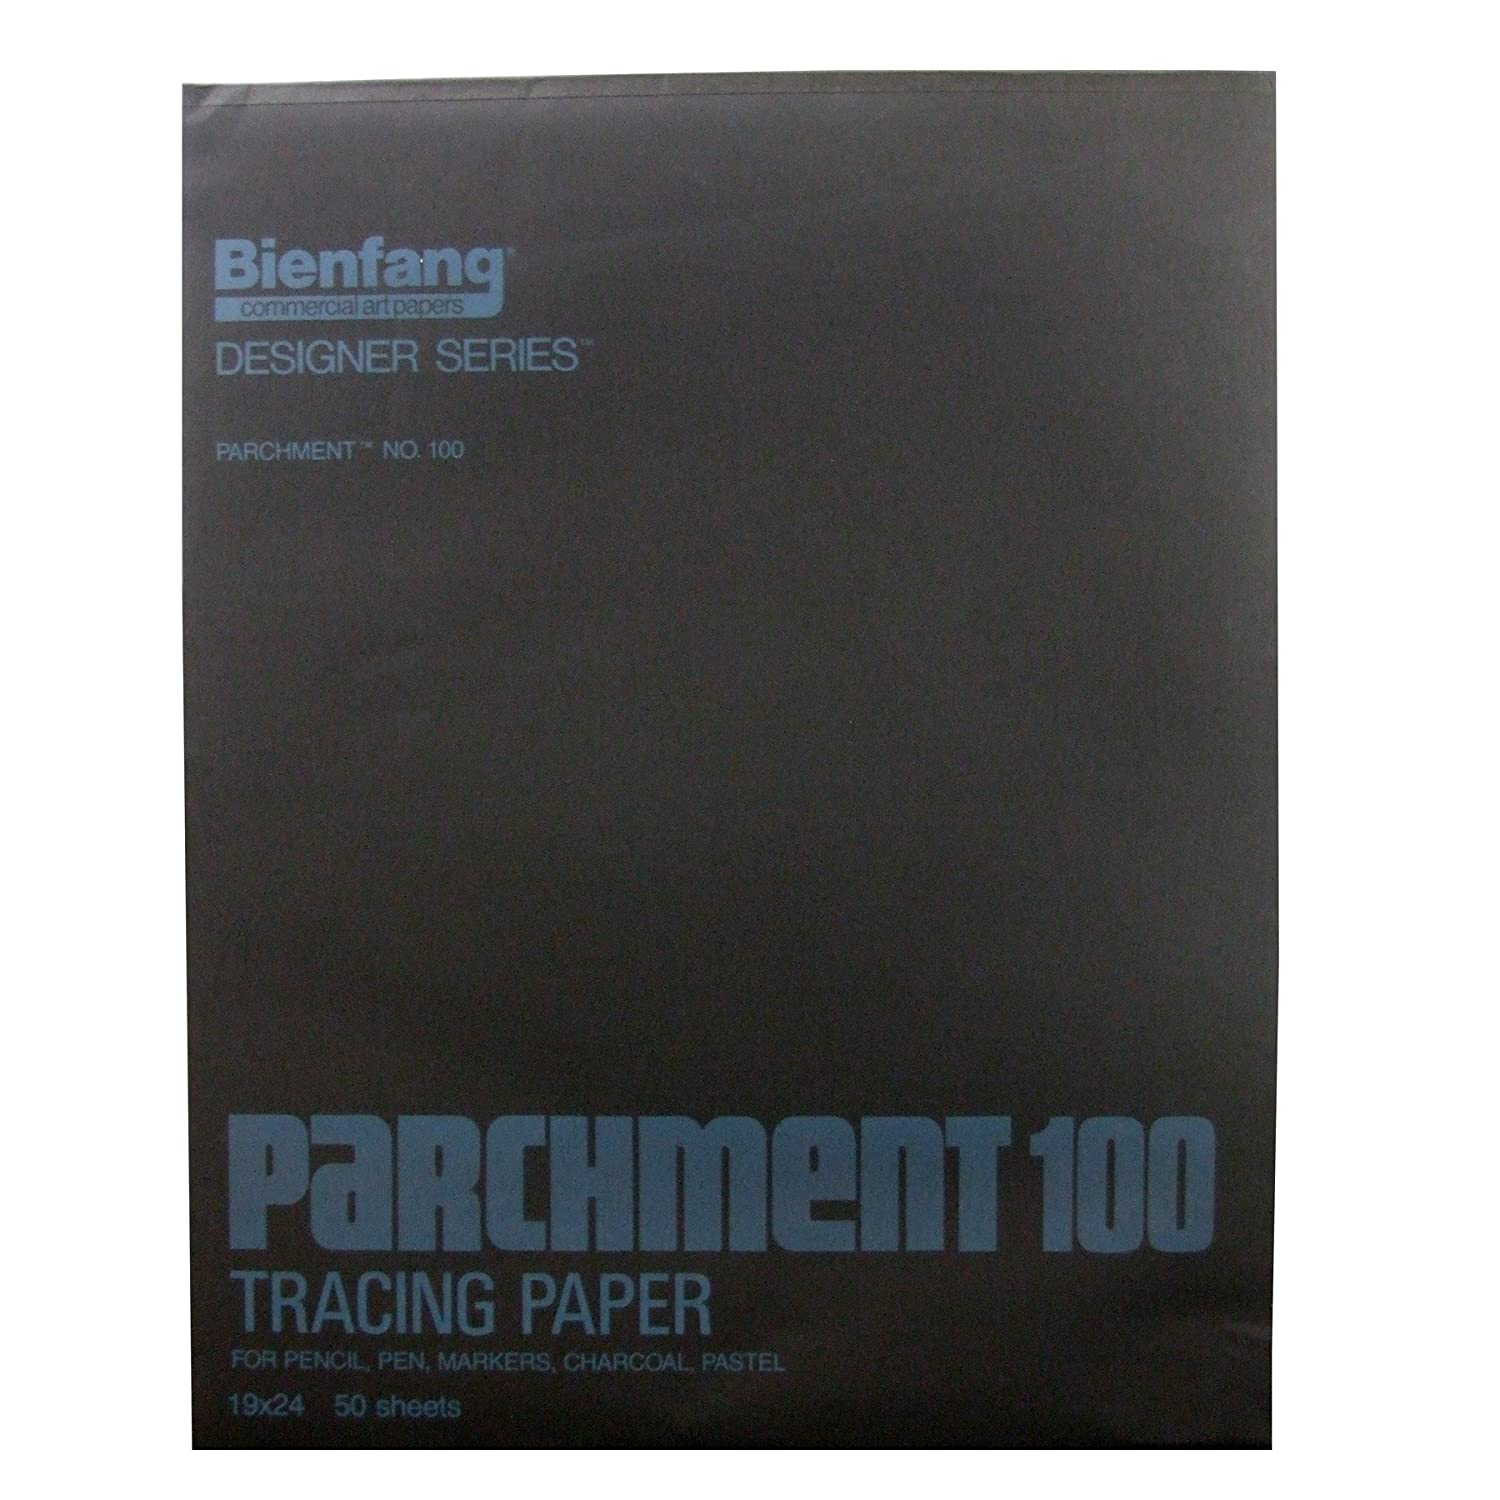 Bienfang Parchment Tracing Paper, 9 x 12 Inches, Transparent, 50 Sheets per Pad (240-121)